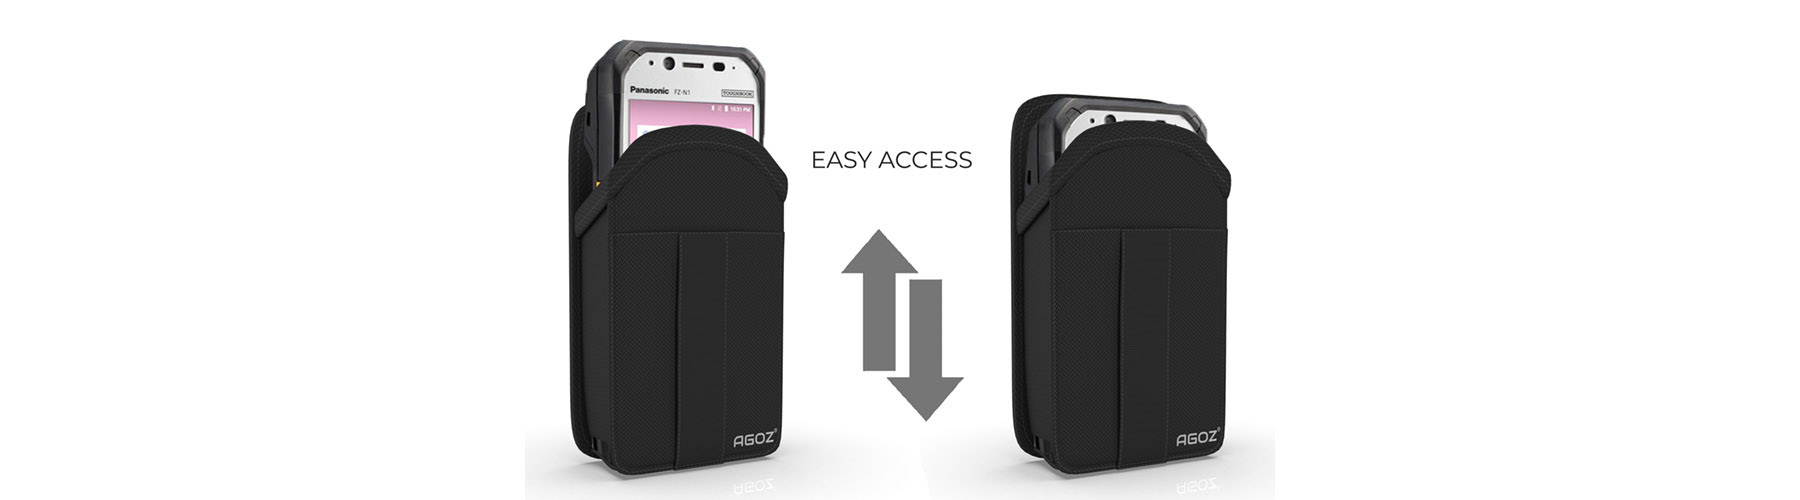 Panasonic Scanner Case with Credit Card Slot